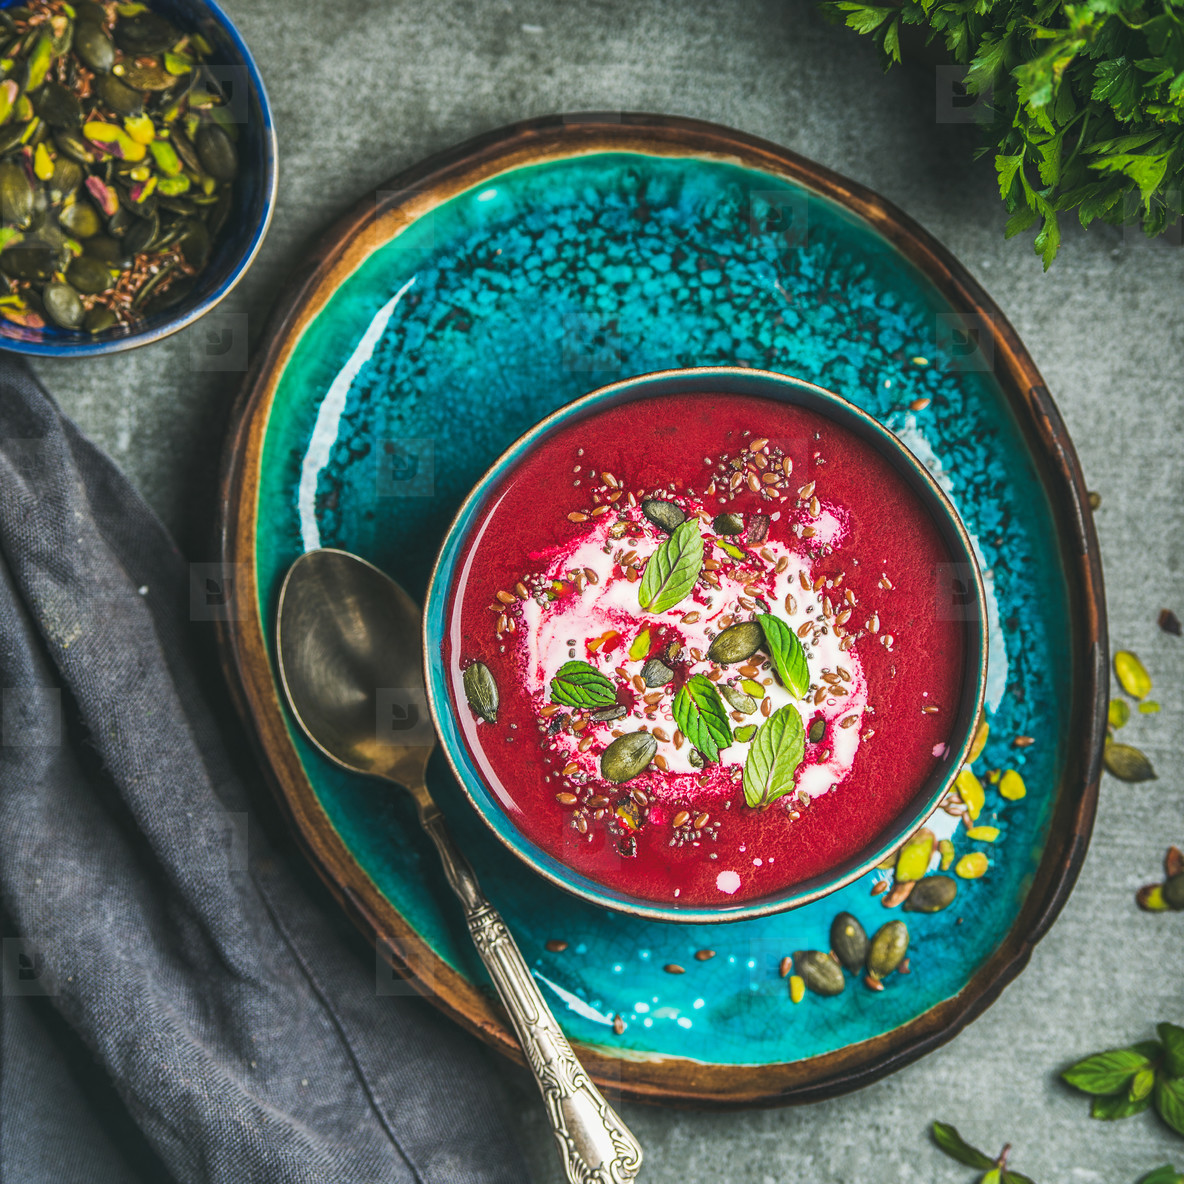 Spring beetroot soup on bright blue plate over gery background